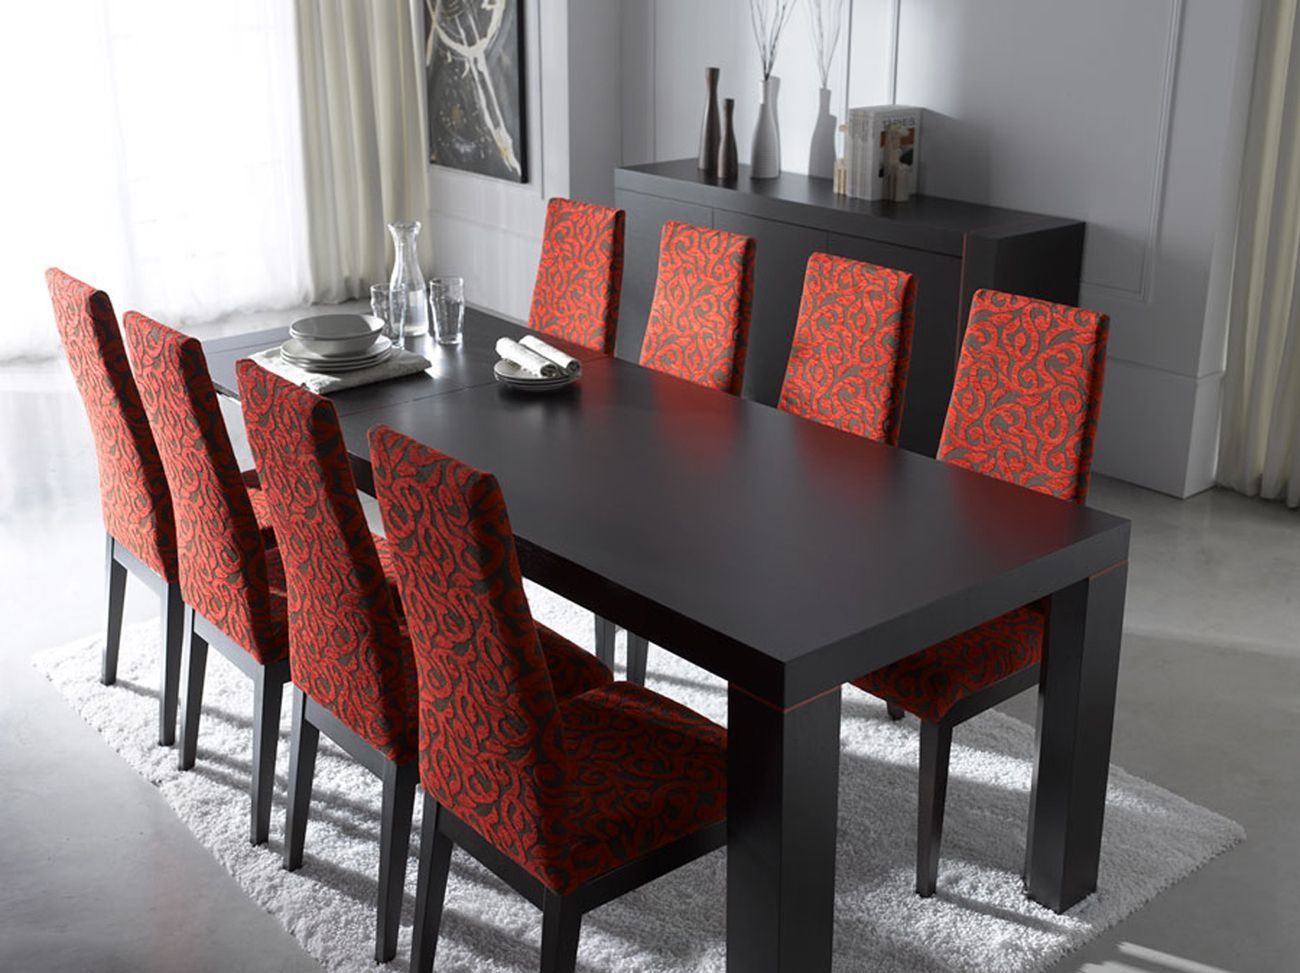 Extendable Rectangular In Wood Fabric Seats Modern Furniture Table